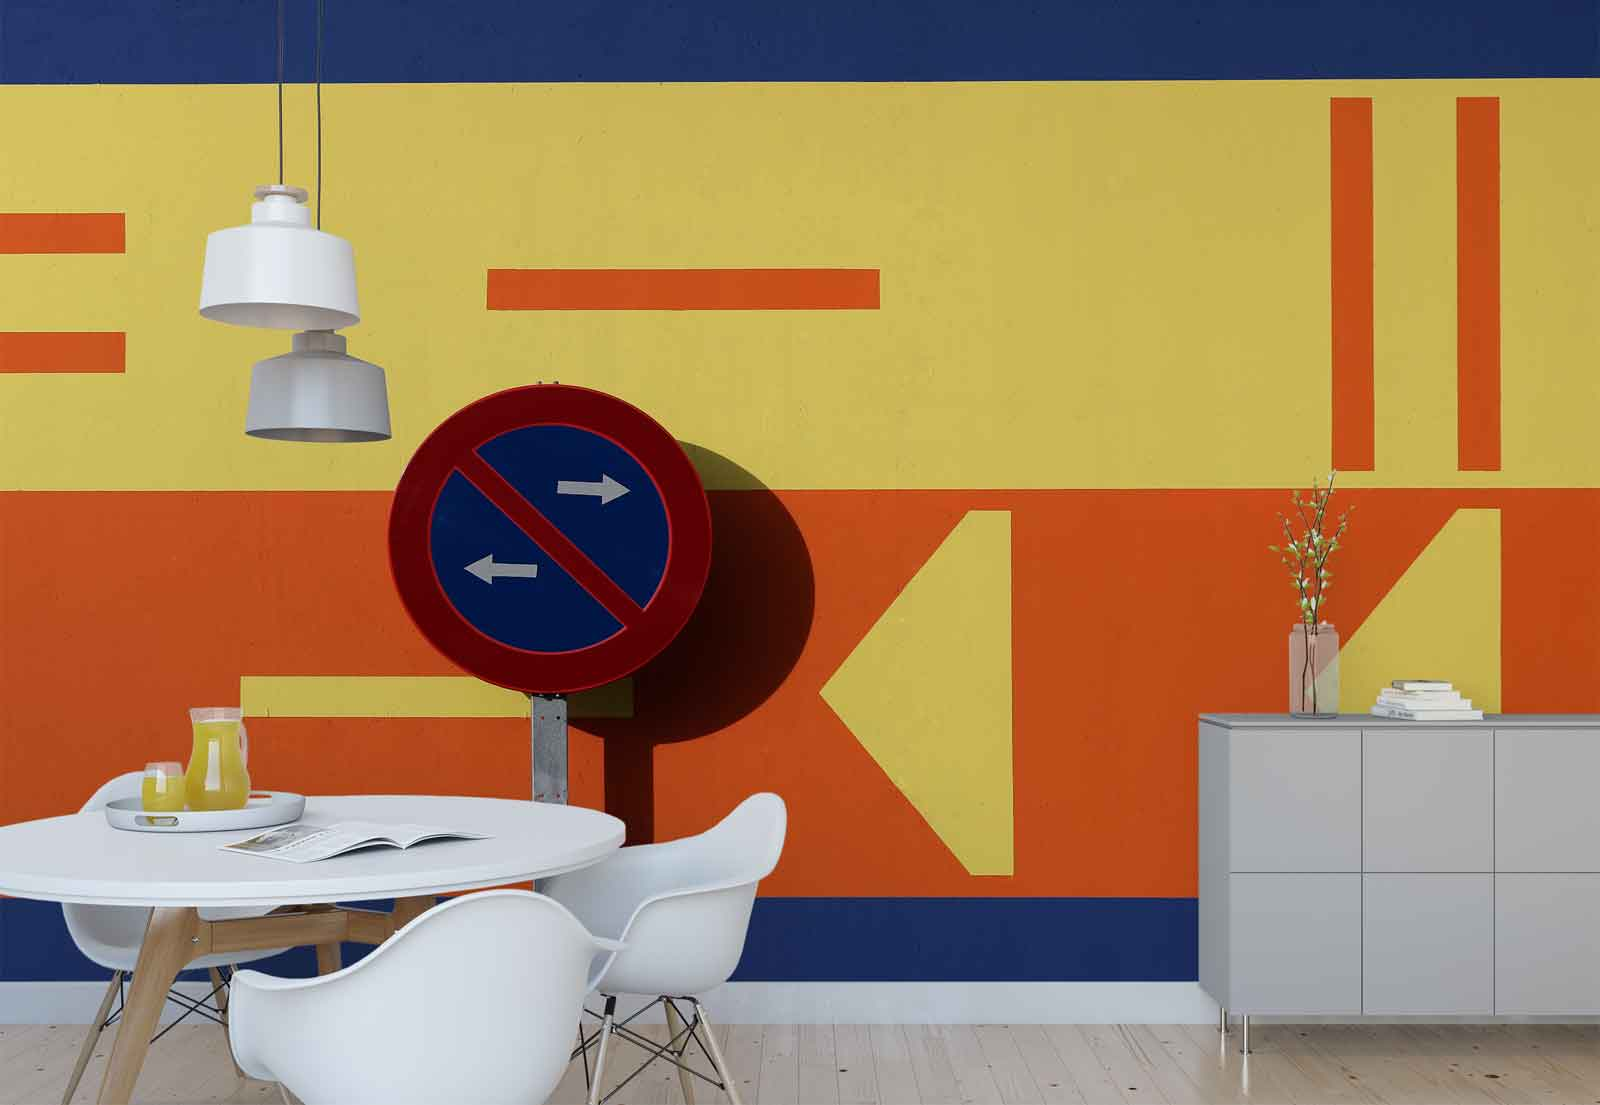 Road Traffic Signs Arrows Direction Photo Wallpaper Wall Mural (1X-1065717)